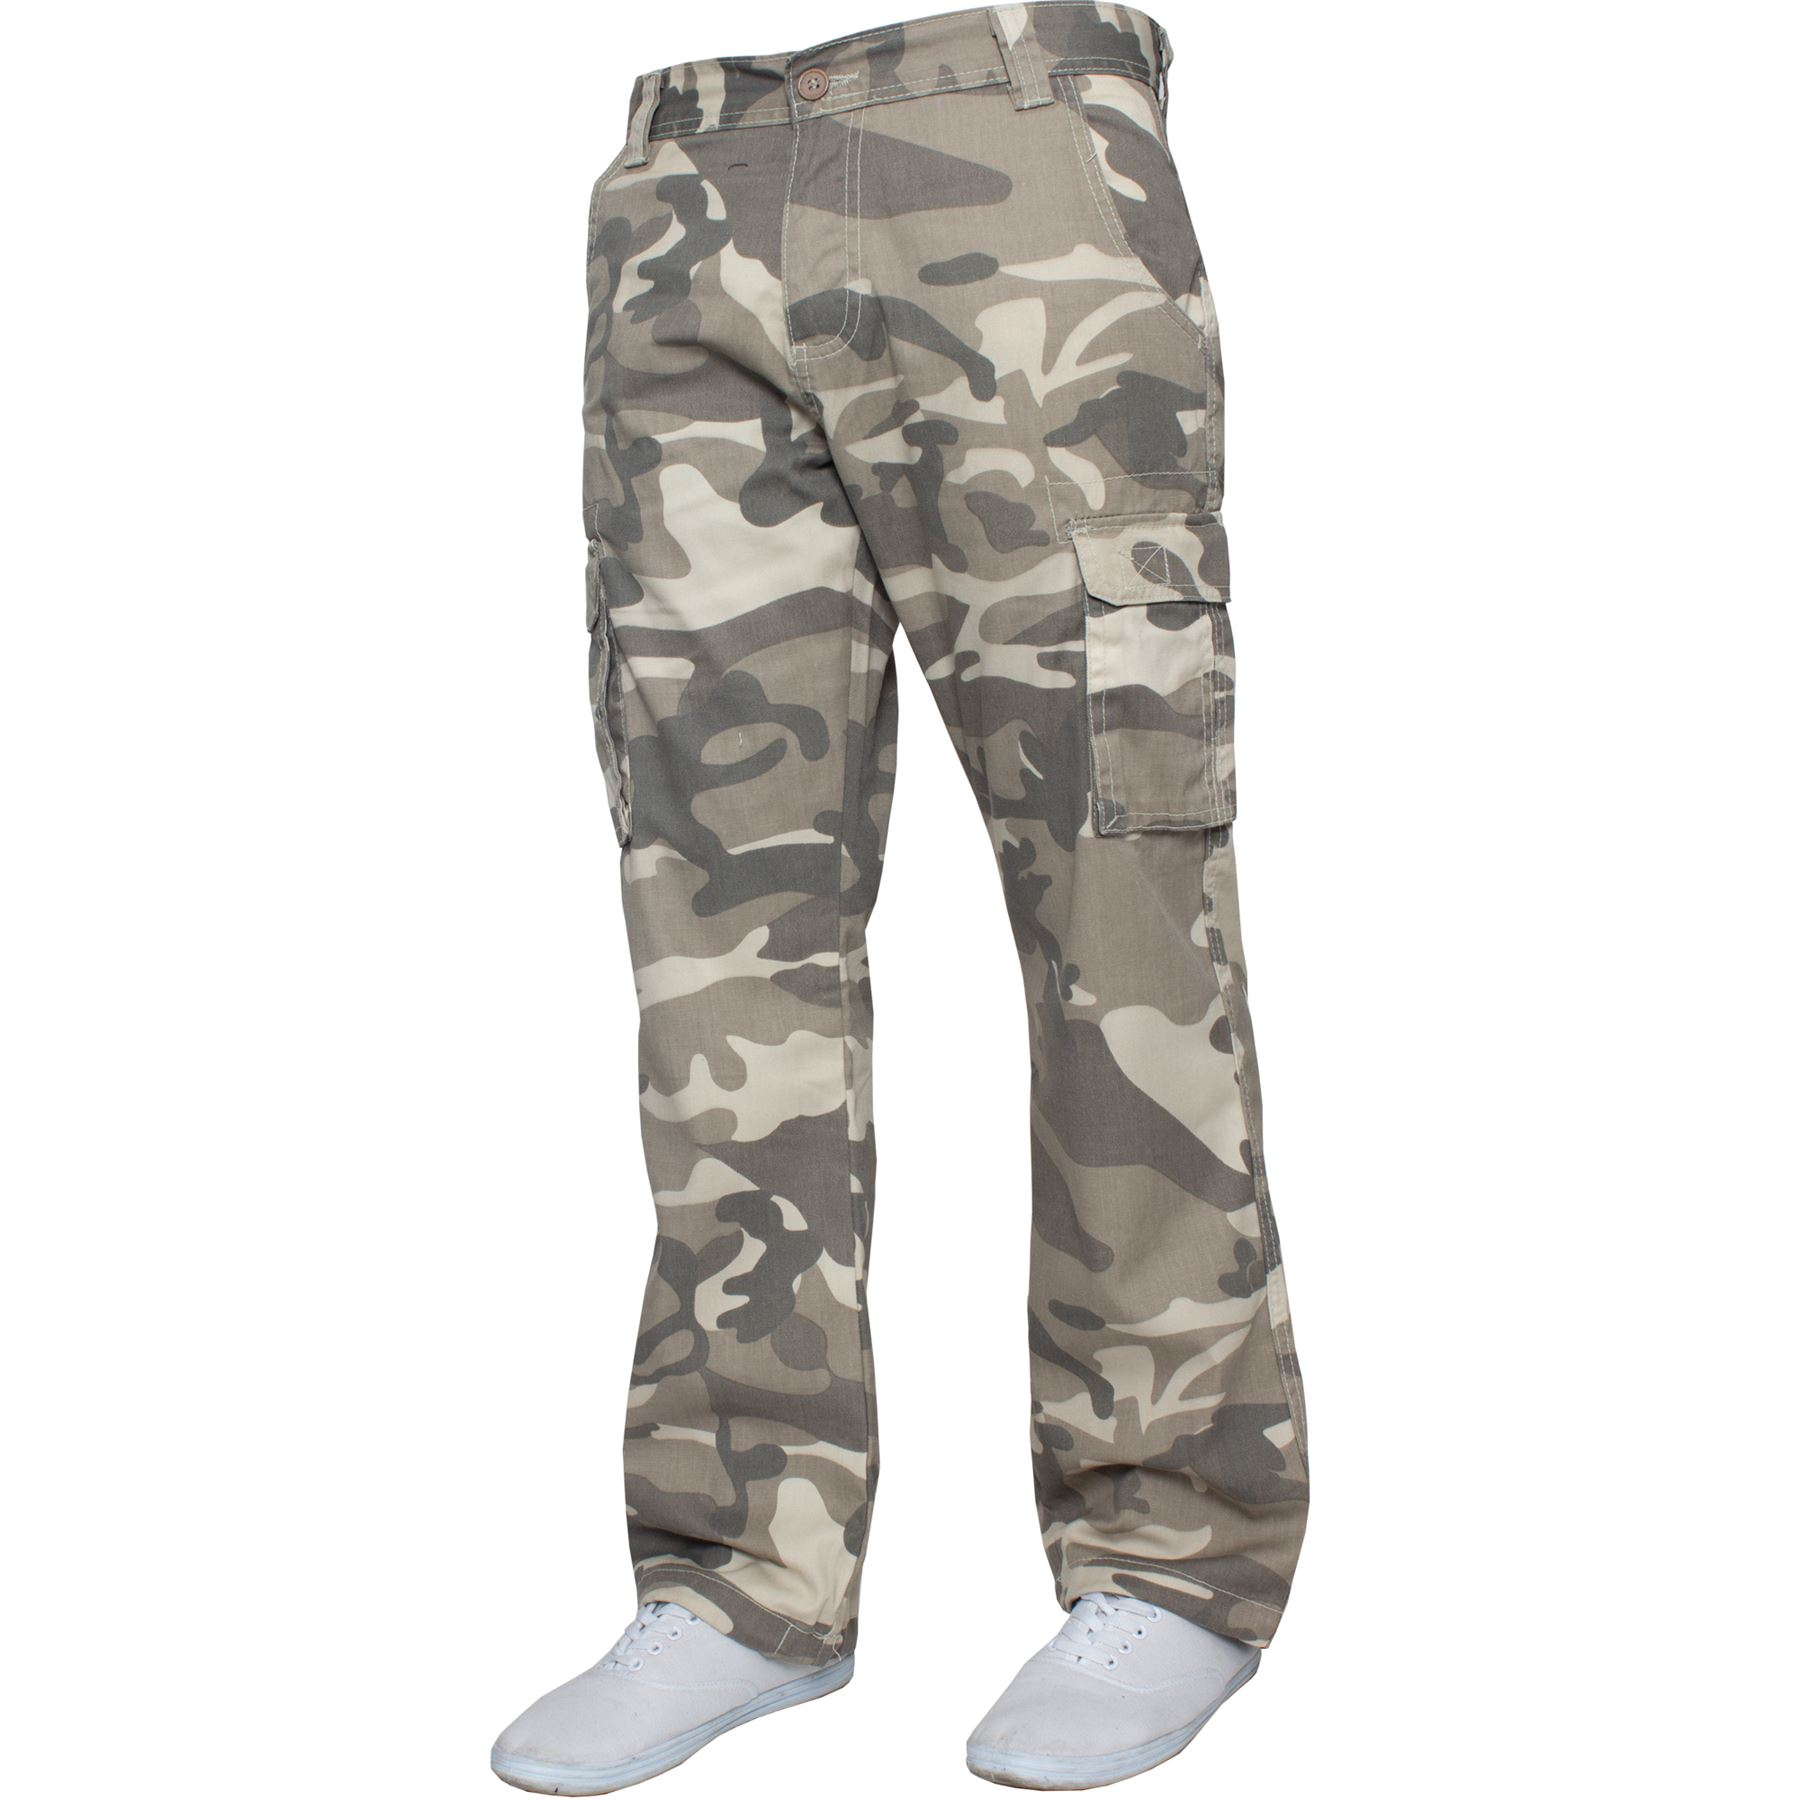 Kruze-Mens-Military-Combat-Trousers-Camouflage-Cargo-Camo-Army-Casual-Work-Pants miniatura 3